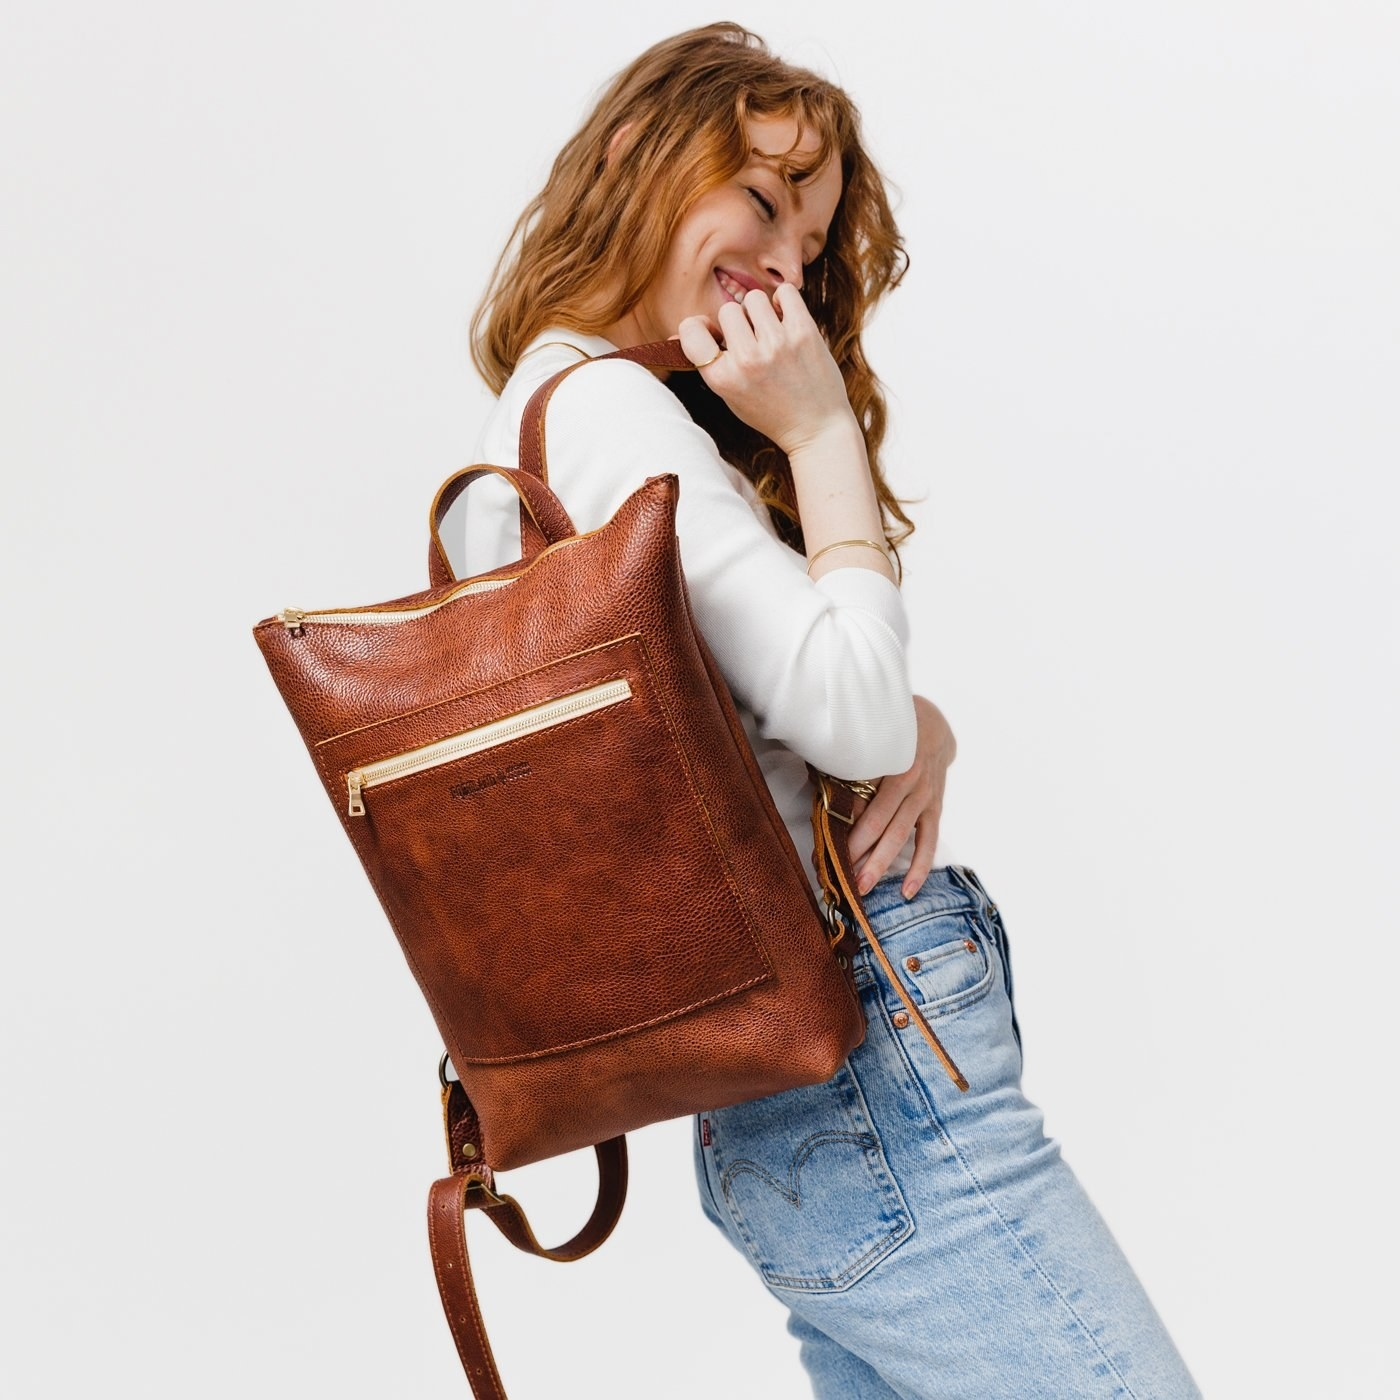 a model carrying the nutmeg leather laptop backpack over their shoulder